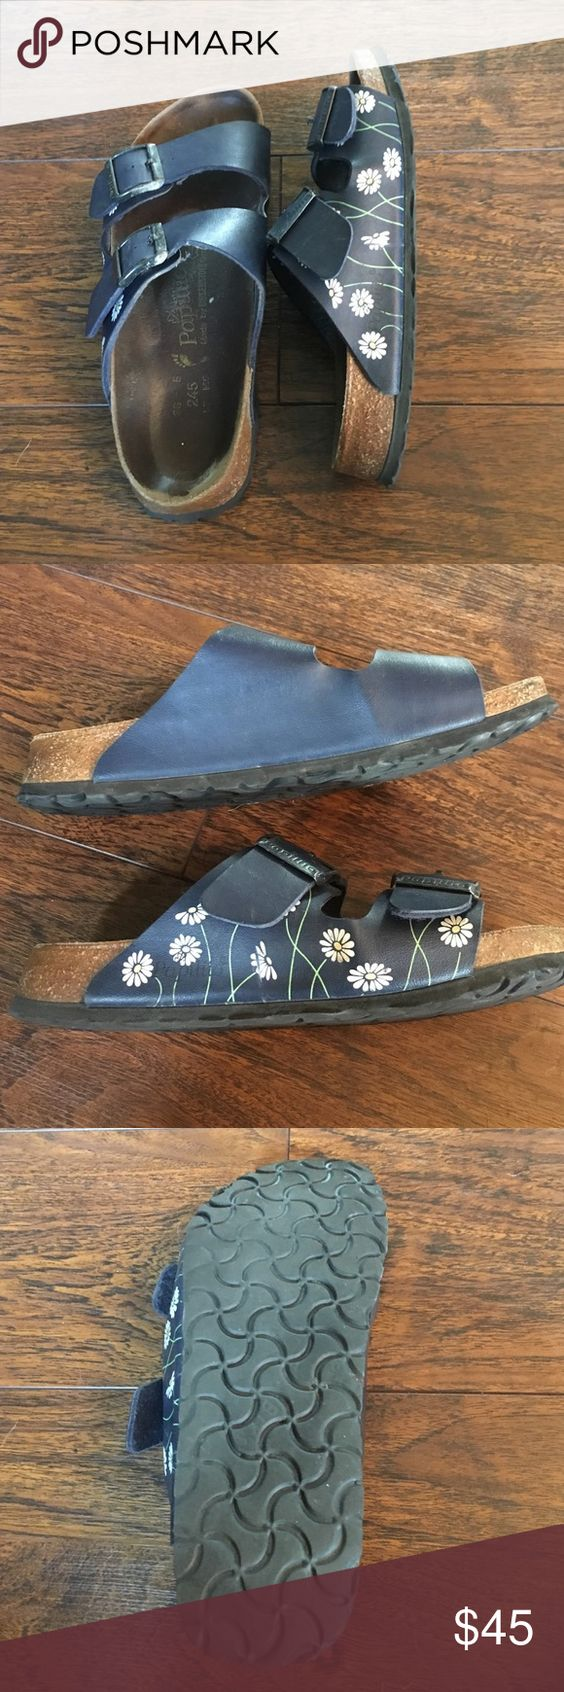 Navy Papillio by Birkenstock Arizonas Papillio by Birkenstock Arizona sandals. The design is navy with daisies on the outside. They are in good used condition with good treads {shown in pic}. They are a size 38 (US 7.5/8) Birkenstock Shoes Sandals